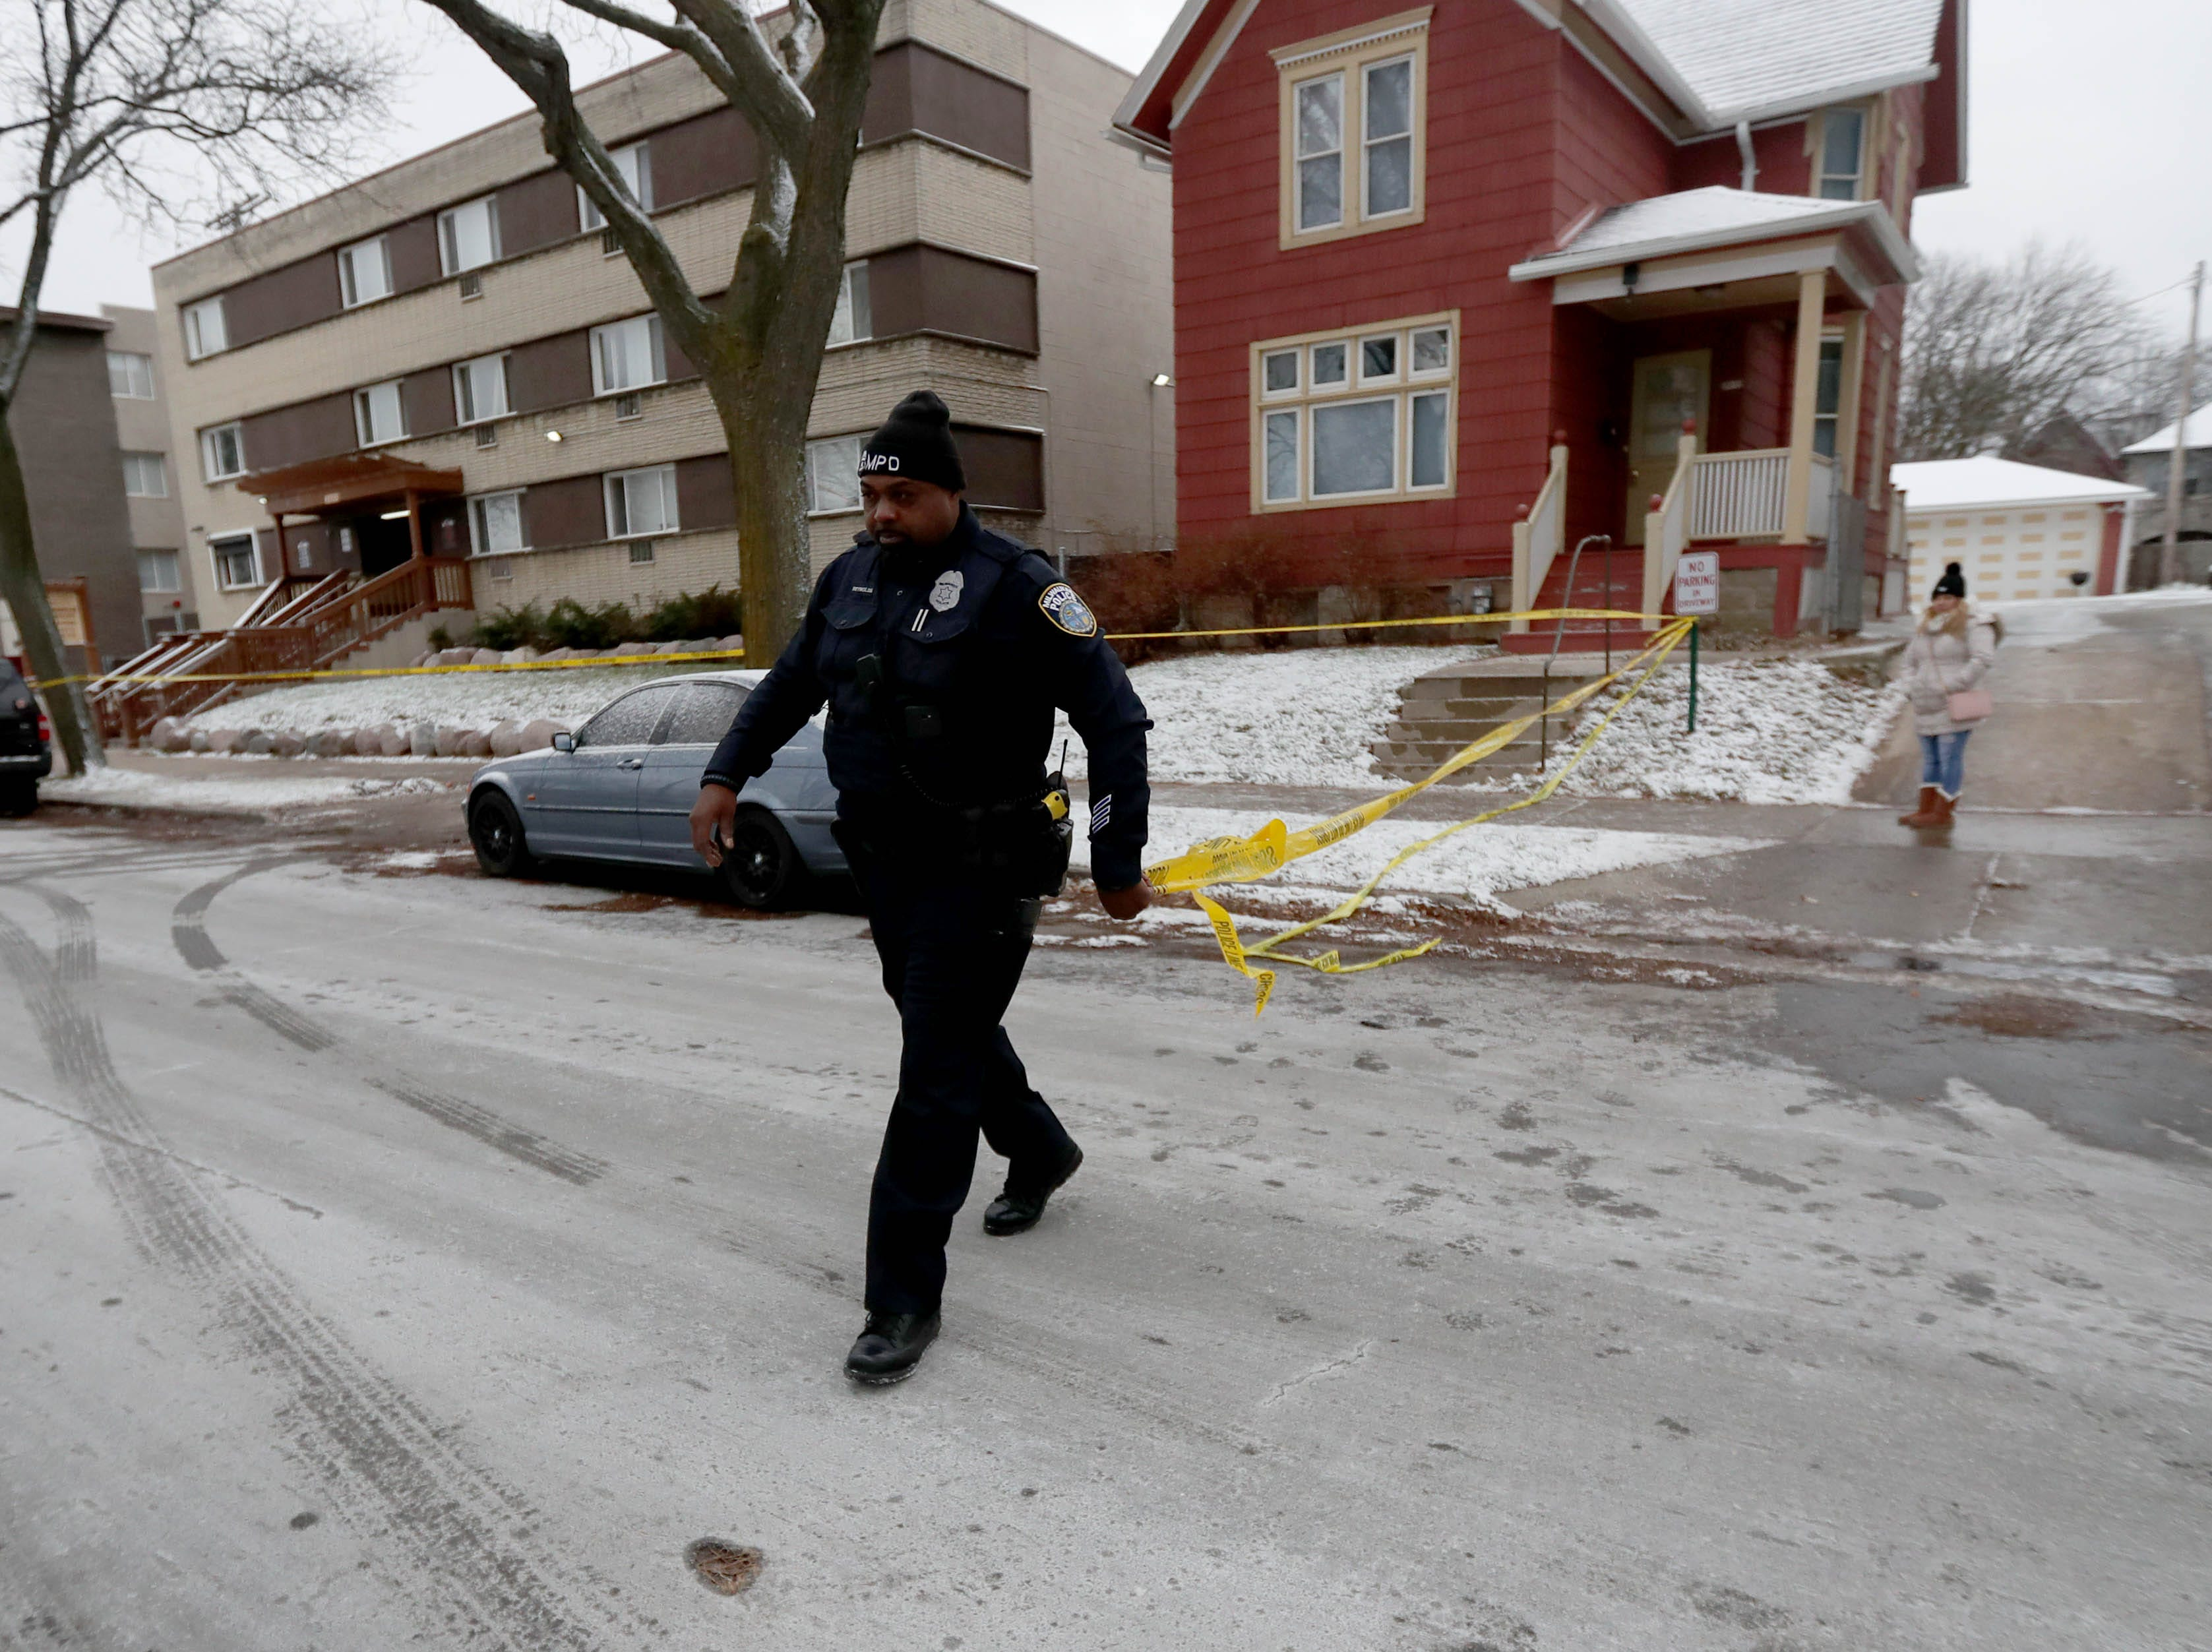 A Milwaukee police officer puts up police tape while officers investigate.